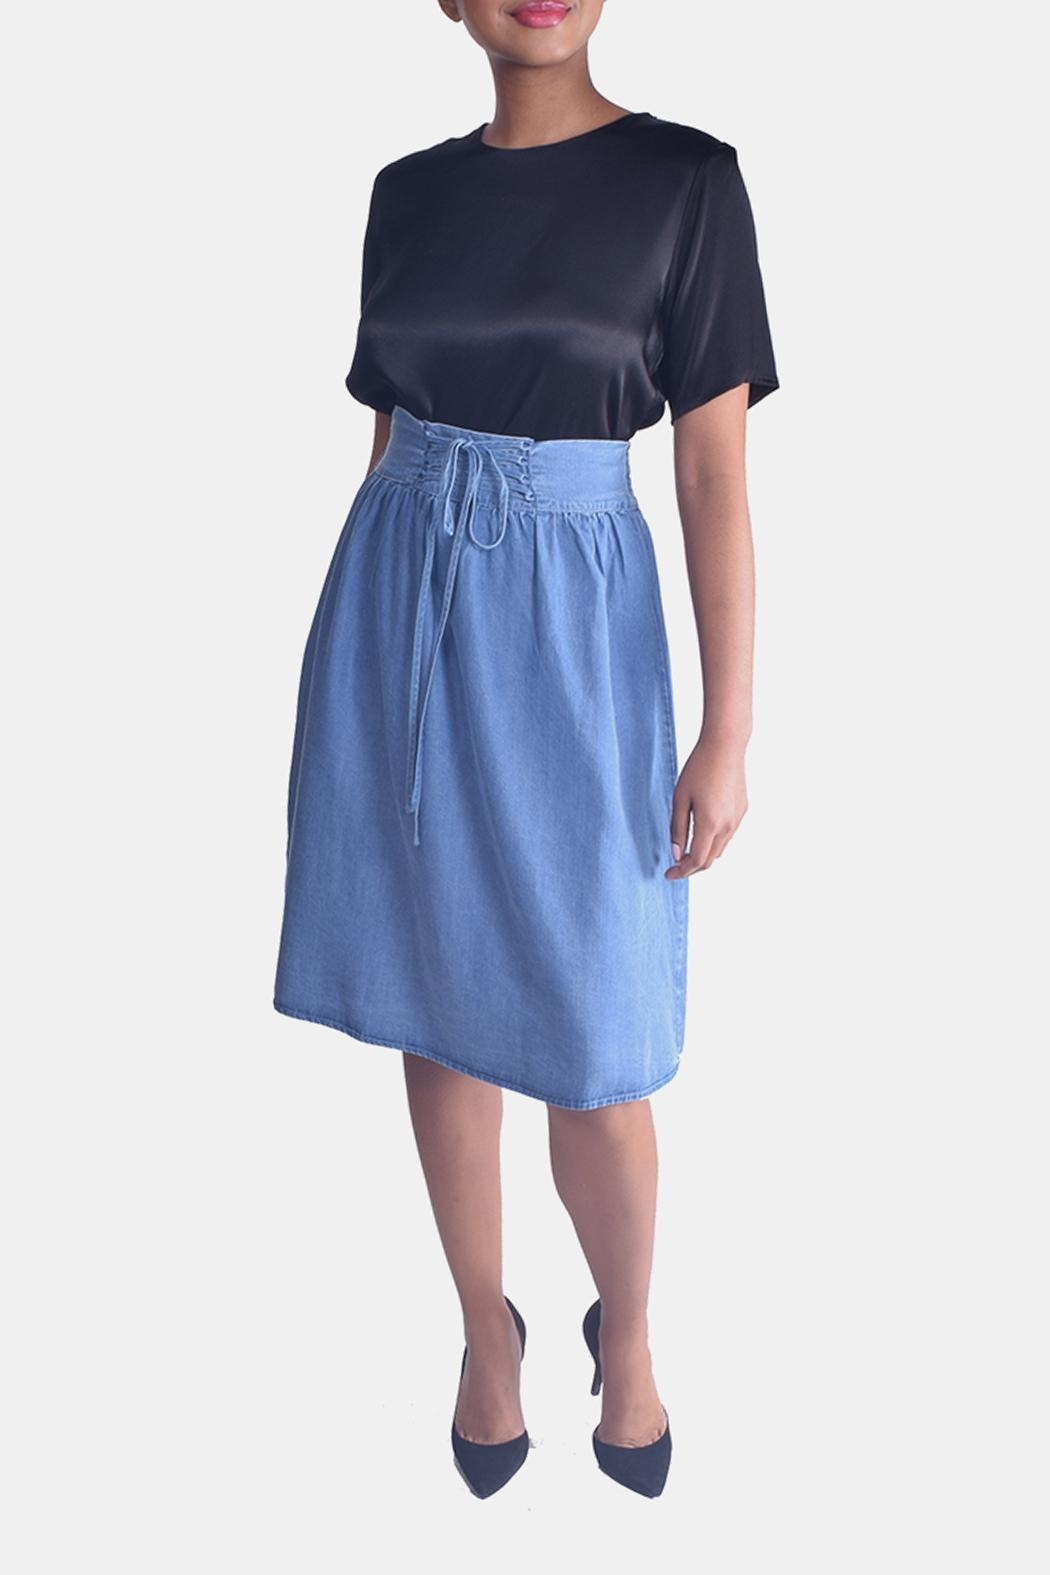 Skies Are Blue Corset Denim Skirt - Front Cropped Image